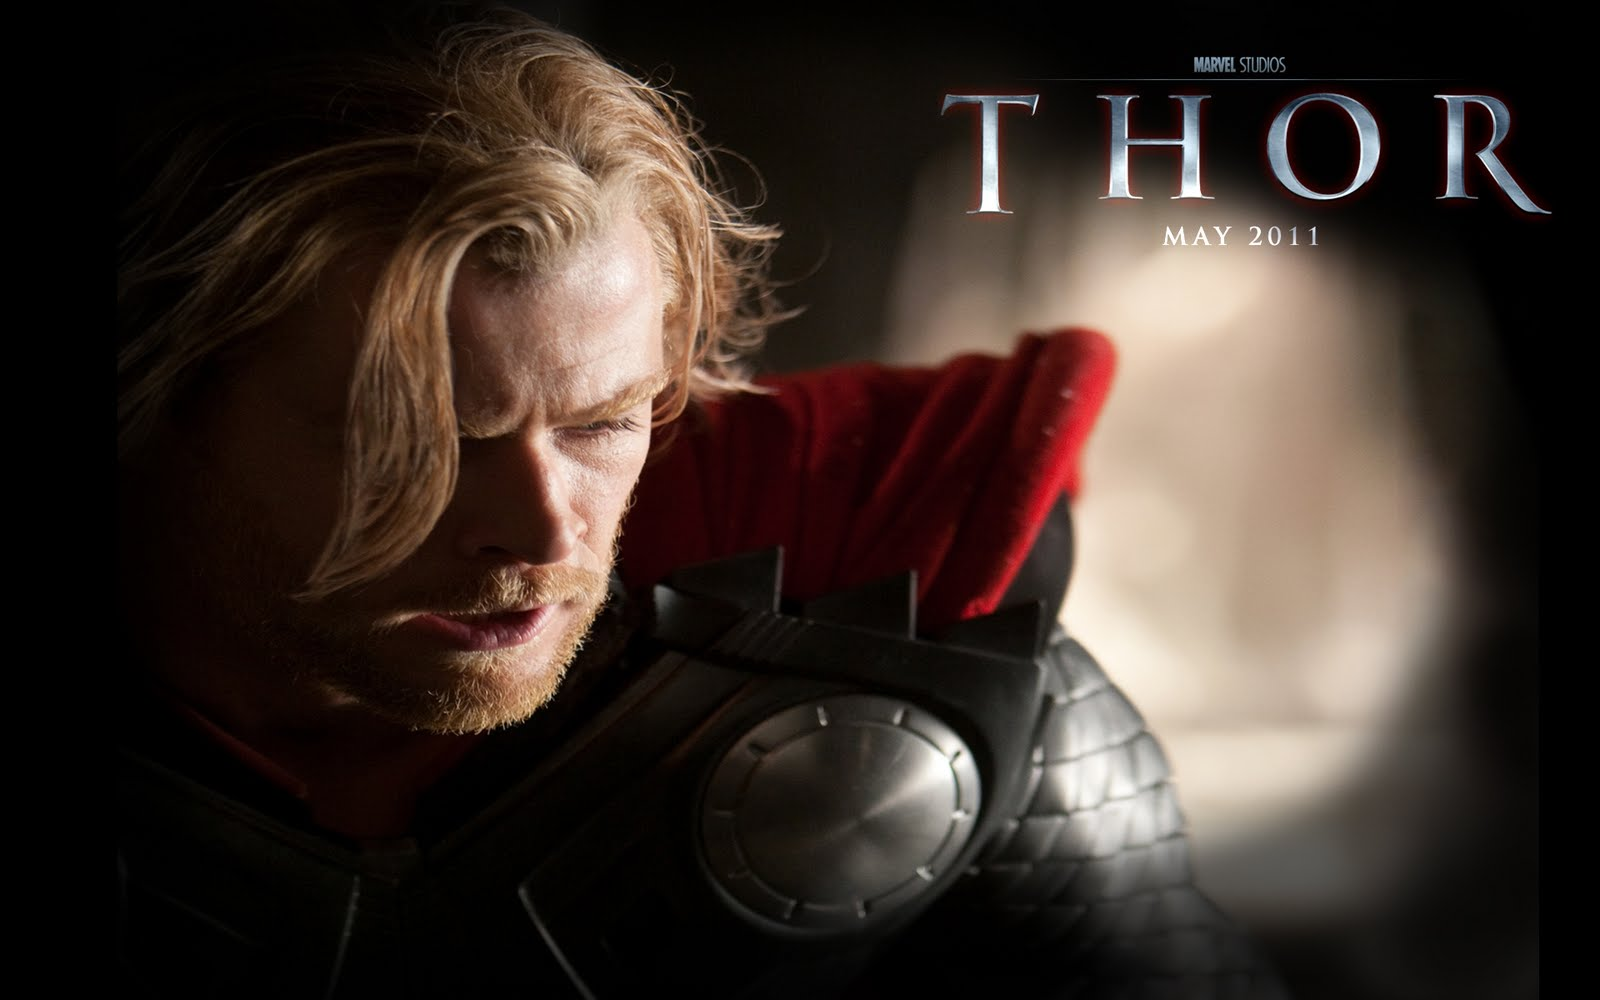 http://1.bp.blogspot.com/-8xqUs1KQc_0/TgQ-iawbupI/AAAAAAAAGk4/-iM6wT_xJsM/s1600/Thor-Movie-2011-Wallpapers-5.jpg